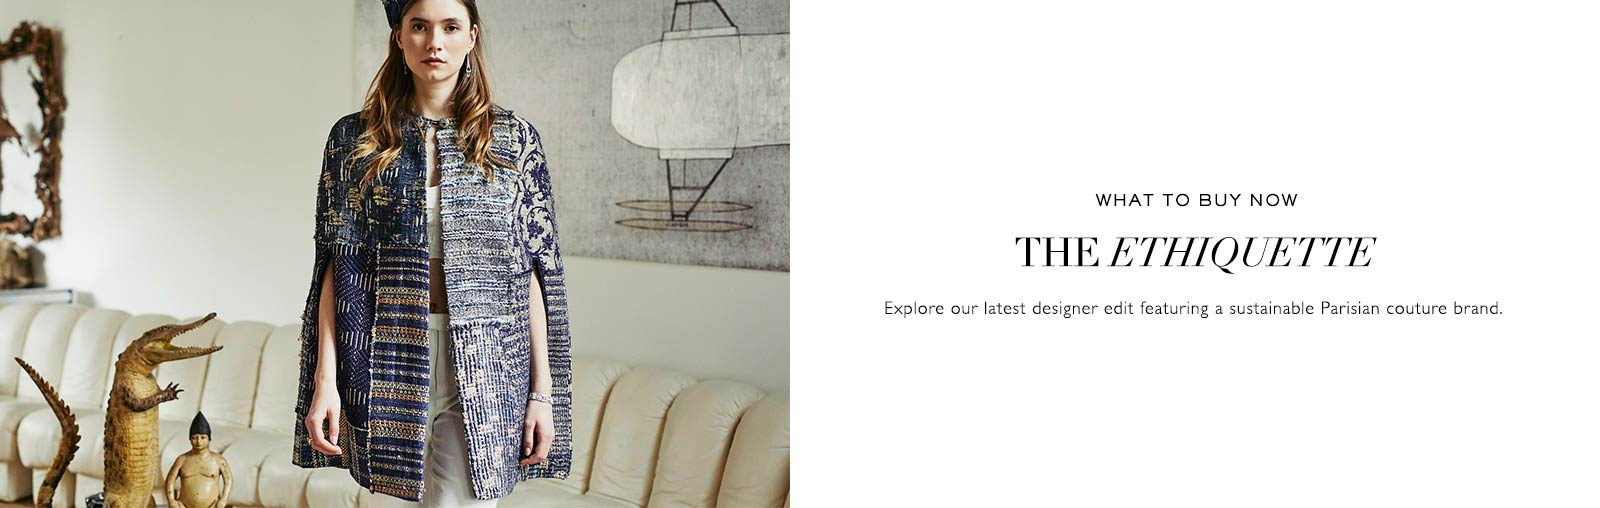 WHAT TO BUY NOW | THE ETHIQUETTE | Explore our latest designer edit featuring a sustainable Parisian couture brand.